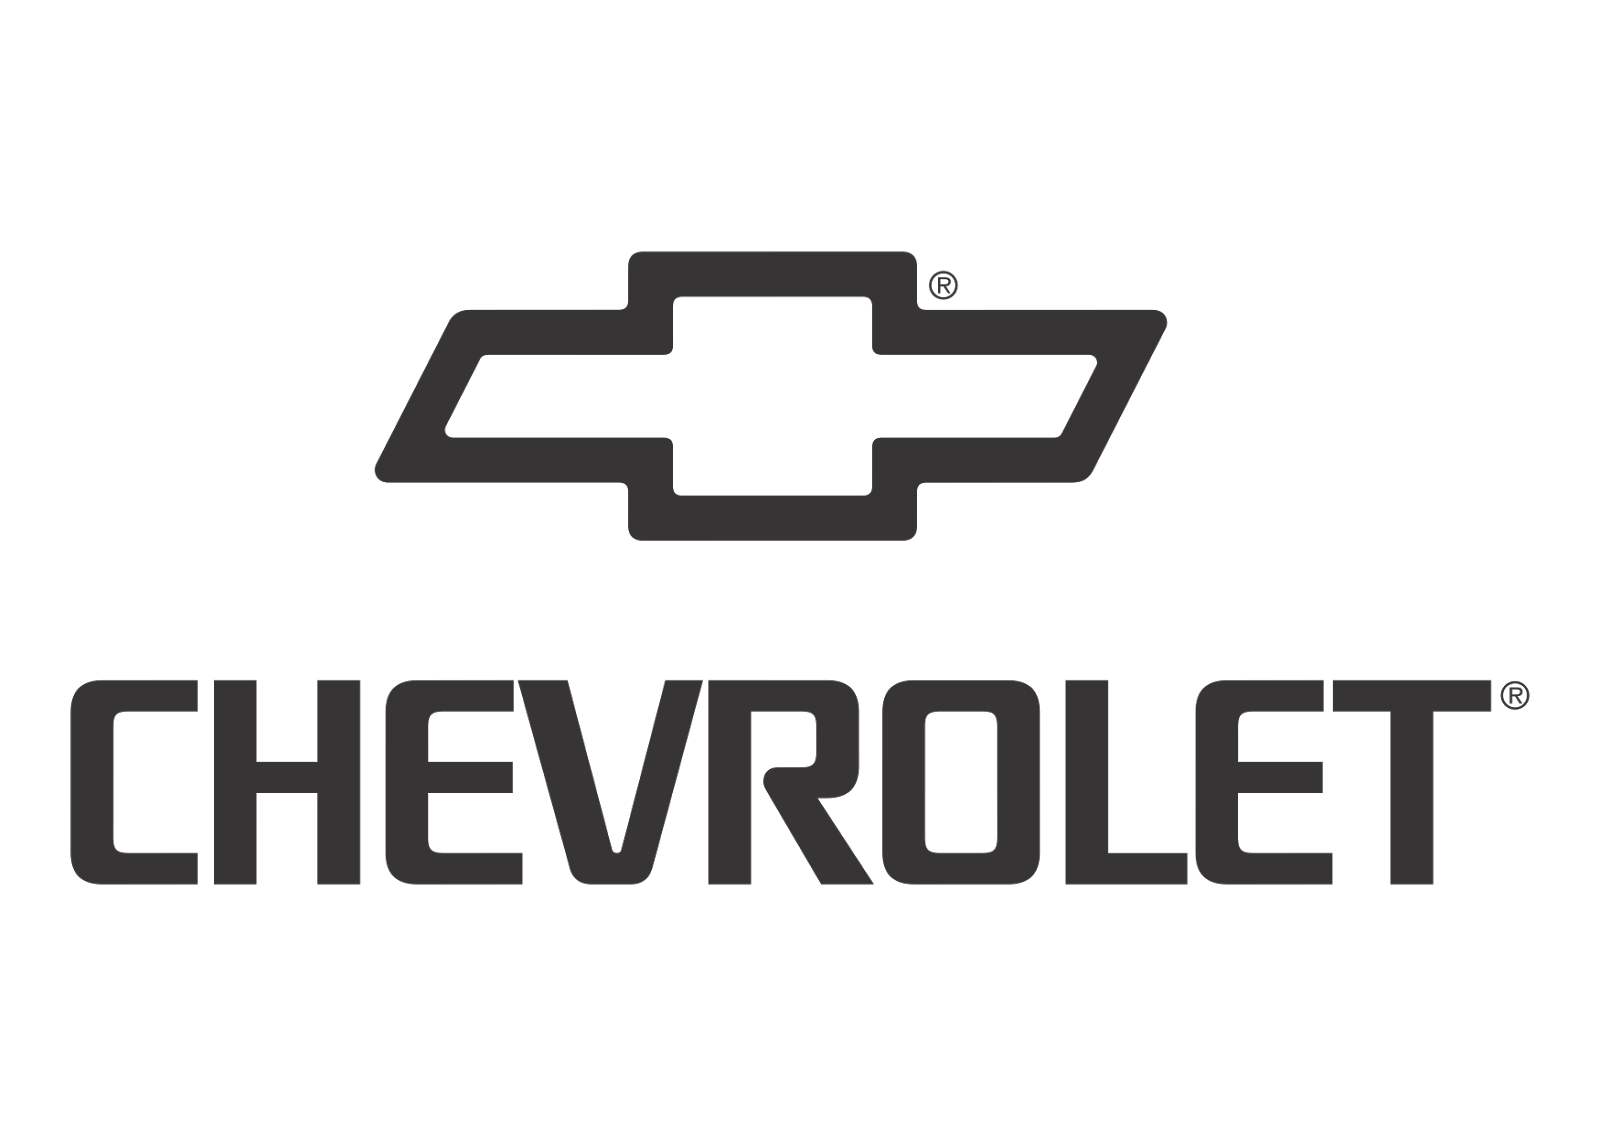 11 Chevrolet Vector Car Images